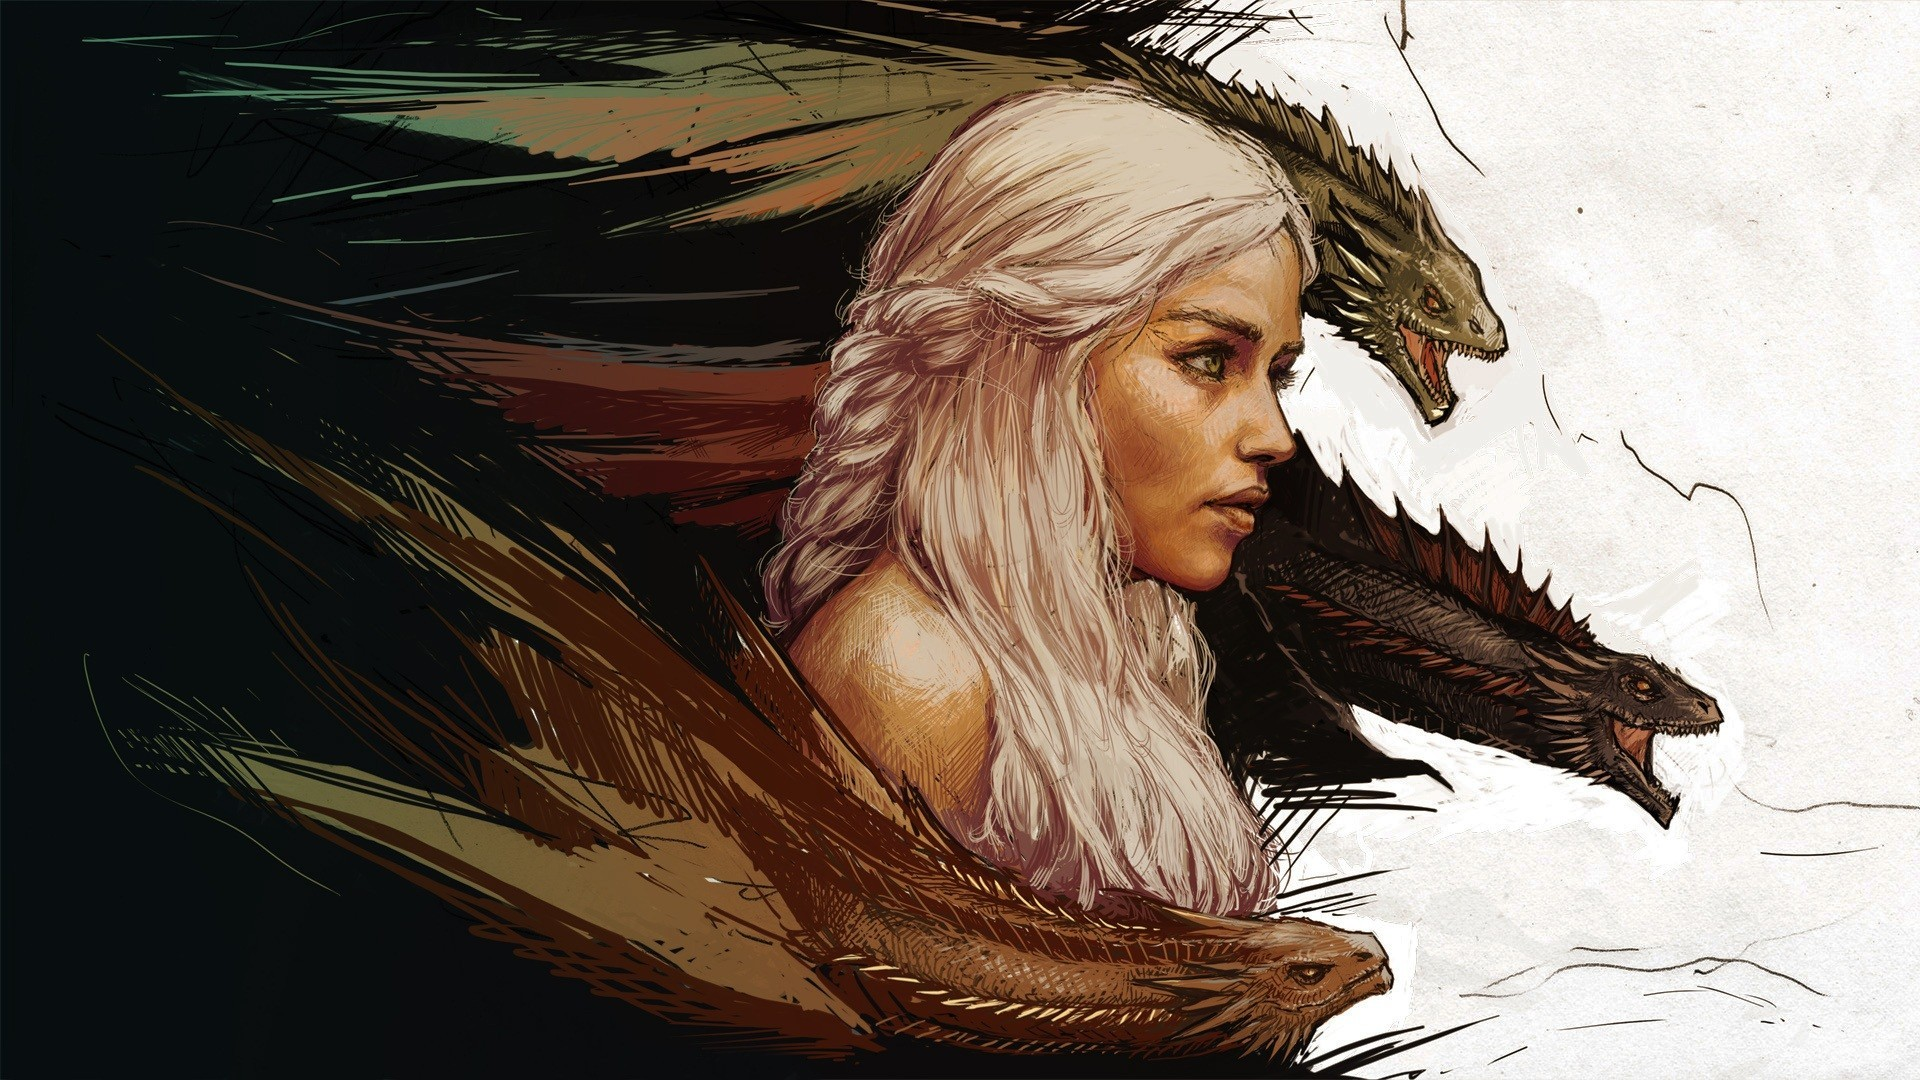 Game of thrones wallpaper 1080p 72 images - Games hd wallpapers 1920x1200 ...